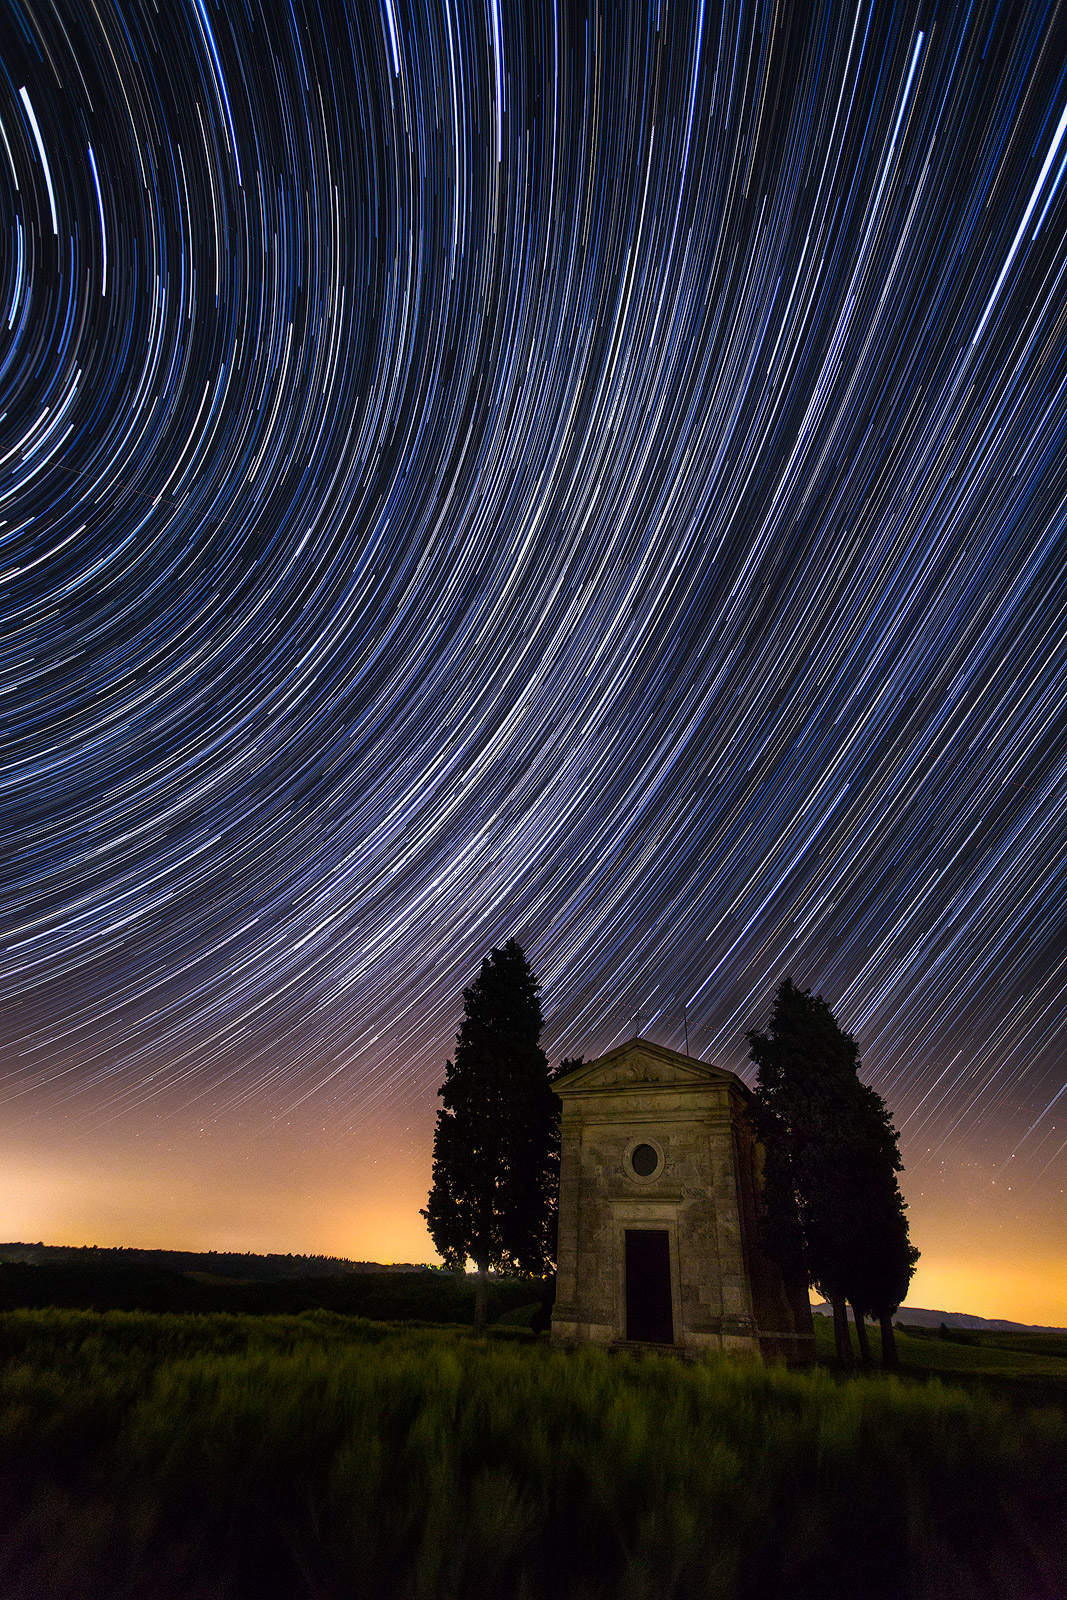 2016,May,Spring,cyprus,europe,hills,italy,landscape,milky way,night,portrait,rolling,star,star trail,stars,trail,tree,trees,tuscany,val d'orcia,val dorcia,vertical,vitaleta church,wheat fields, photo